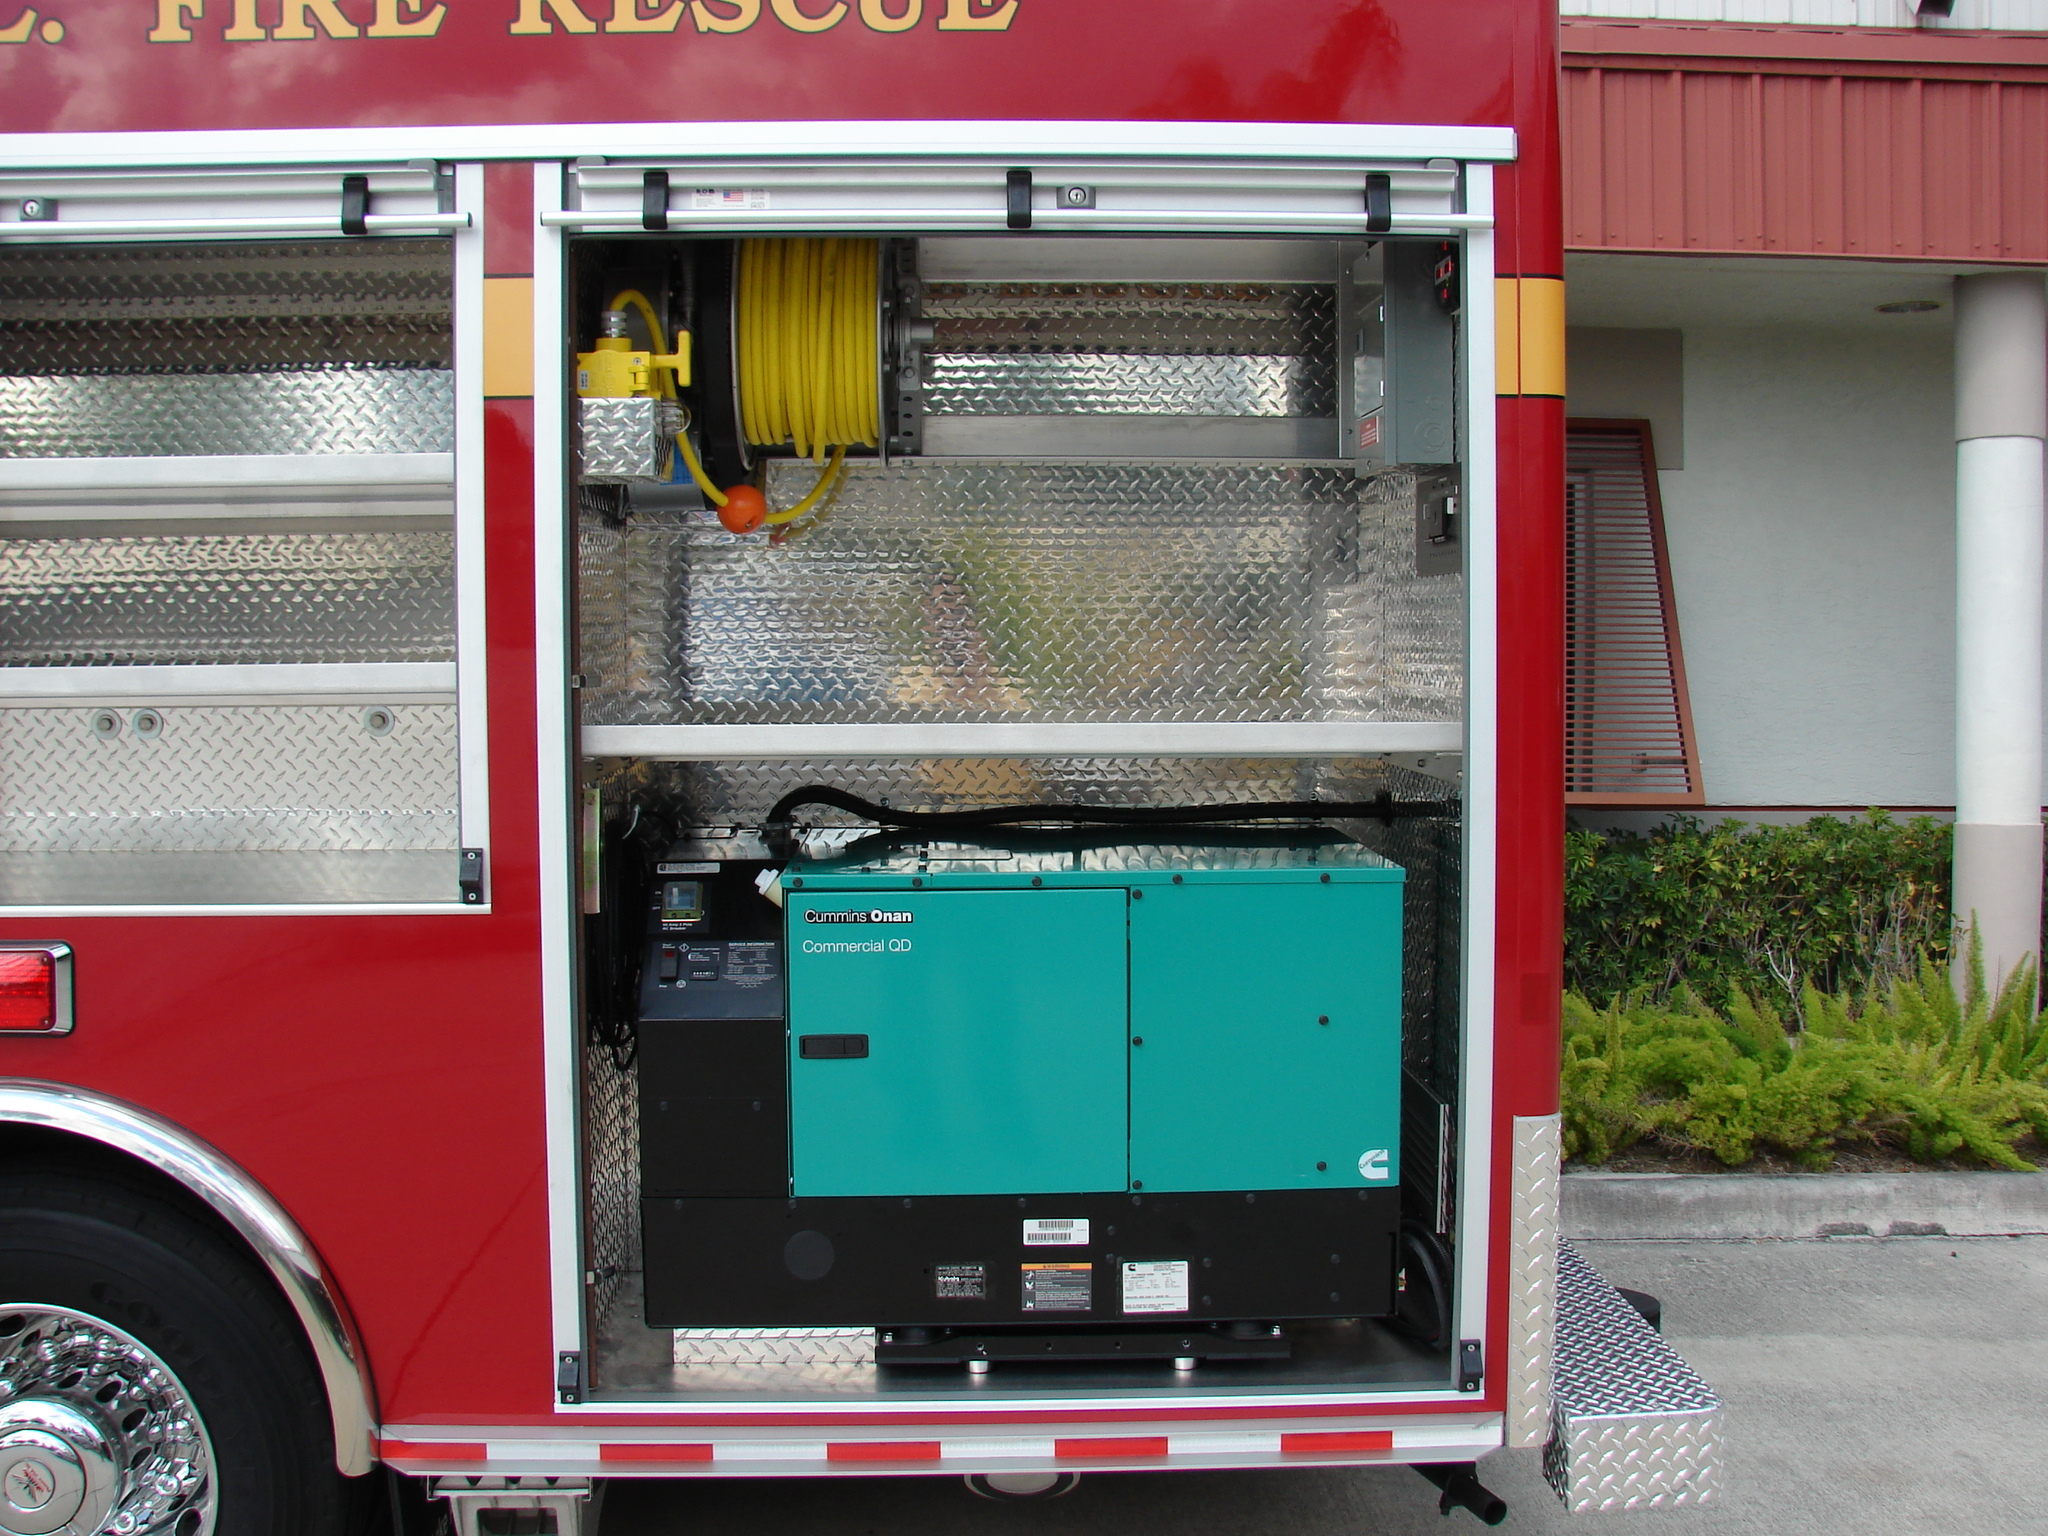 15-Ft. Walk-In Dive Rescue Vehicle